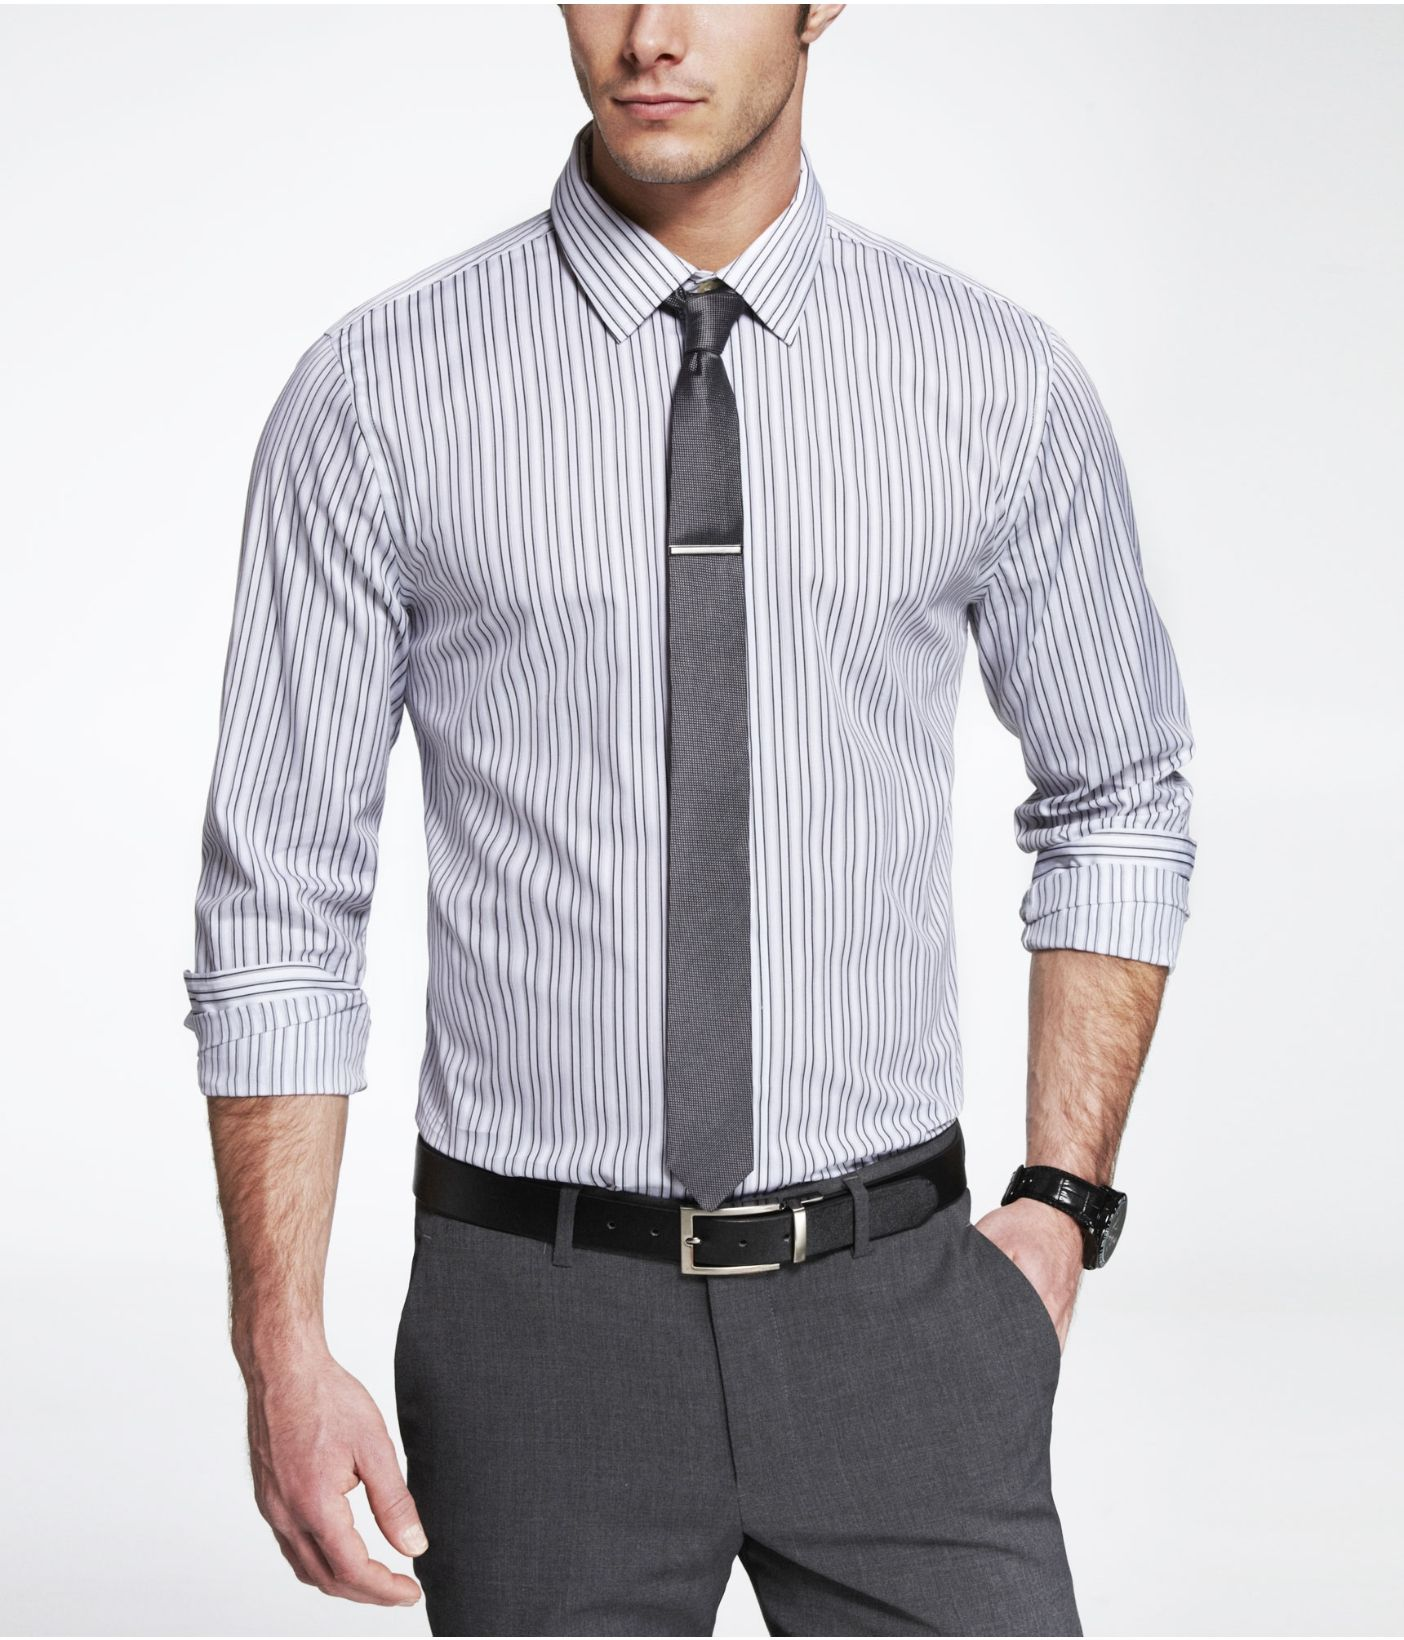 gray striped dress shirt gray tie gray pants black belt